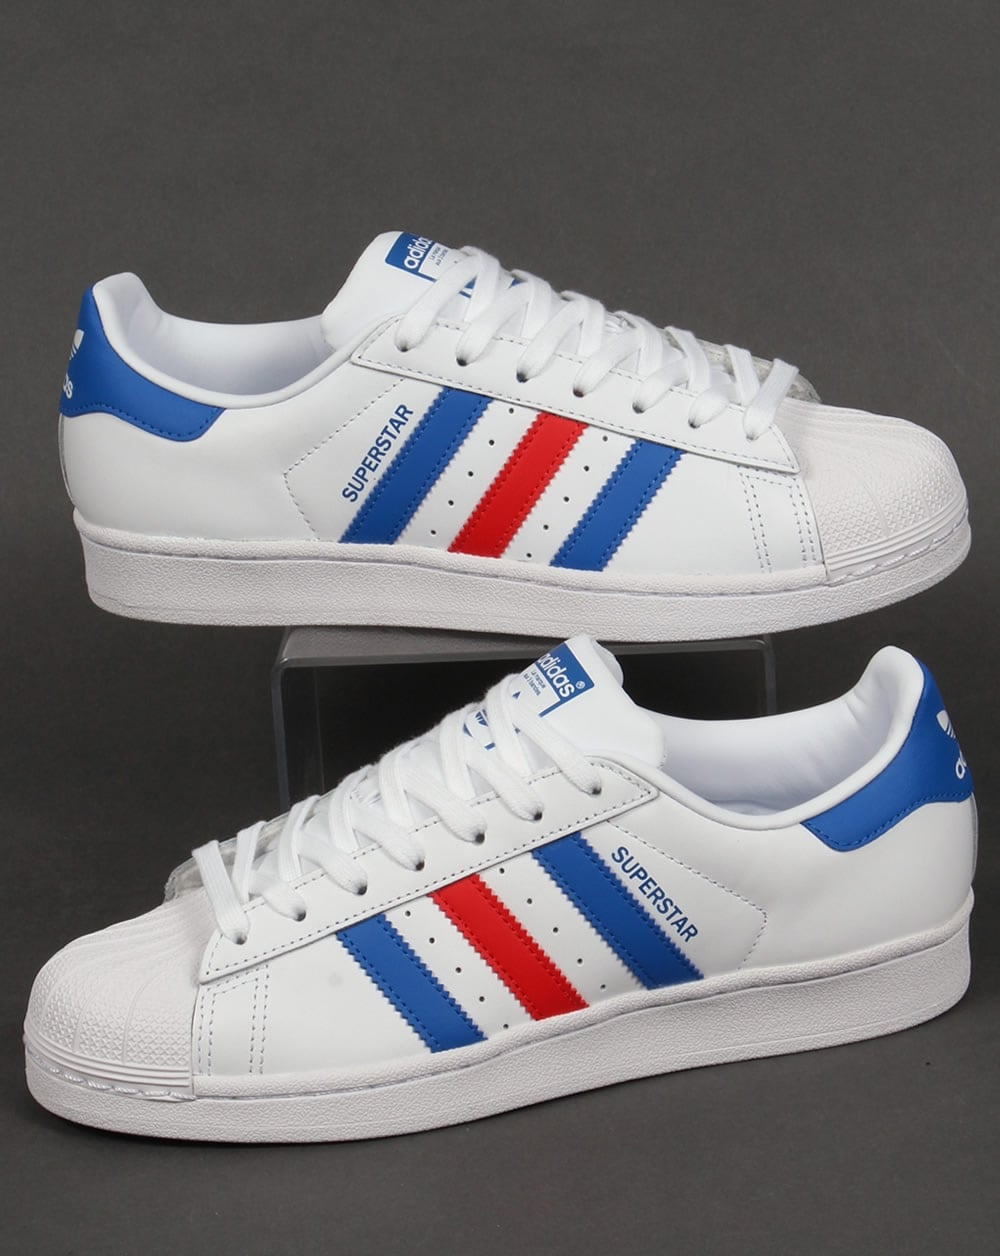 d2611aace4b1a Adidas Superstar Trainers White/Blue/Red